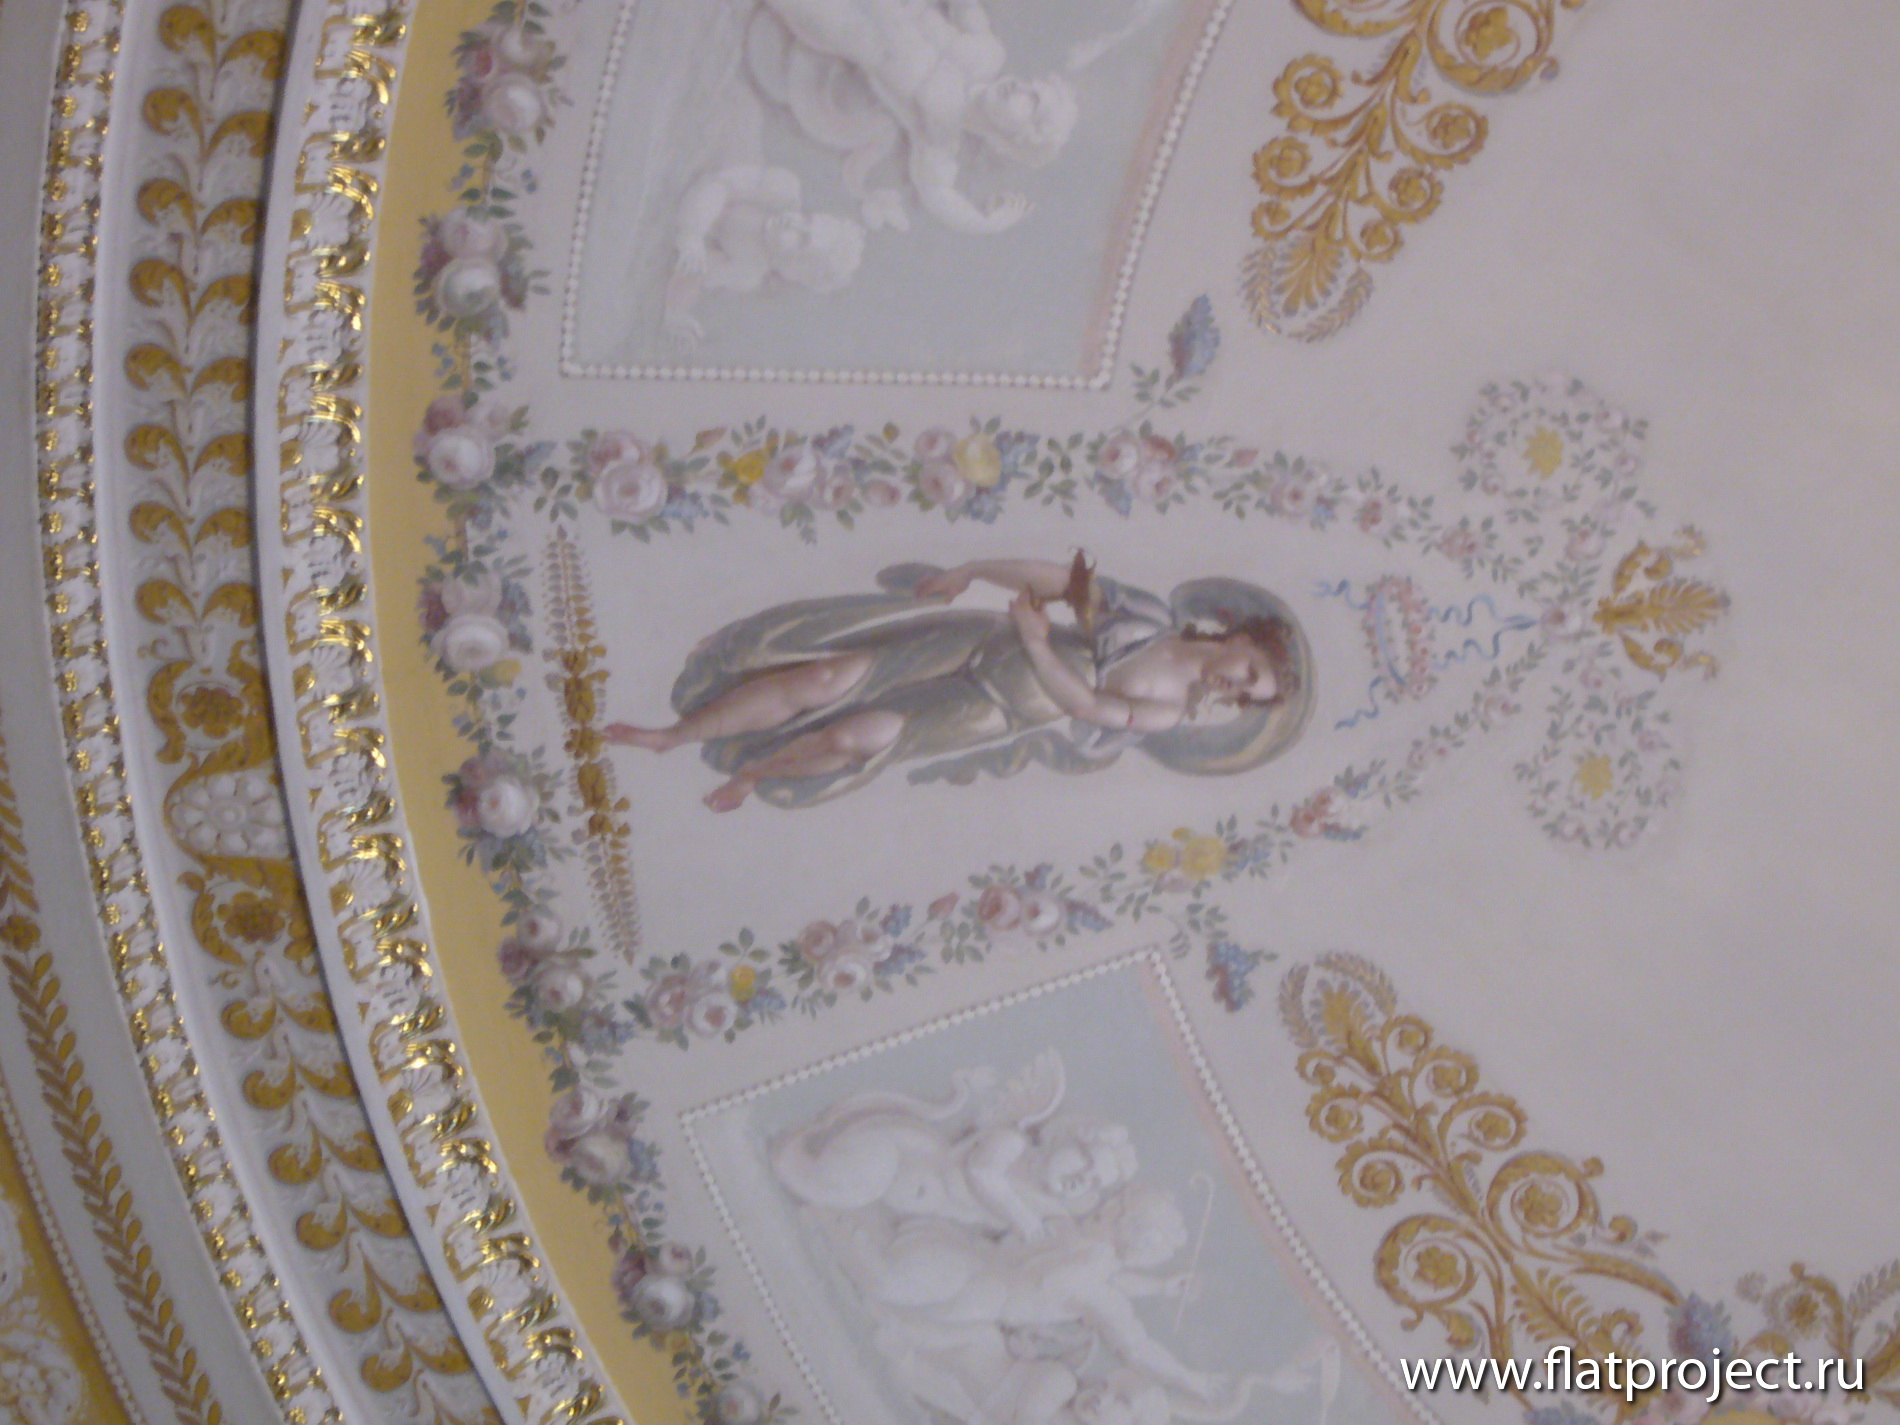 The State Russian museum interiors – photo 46